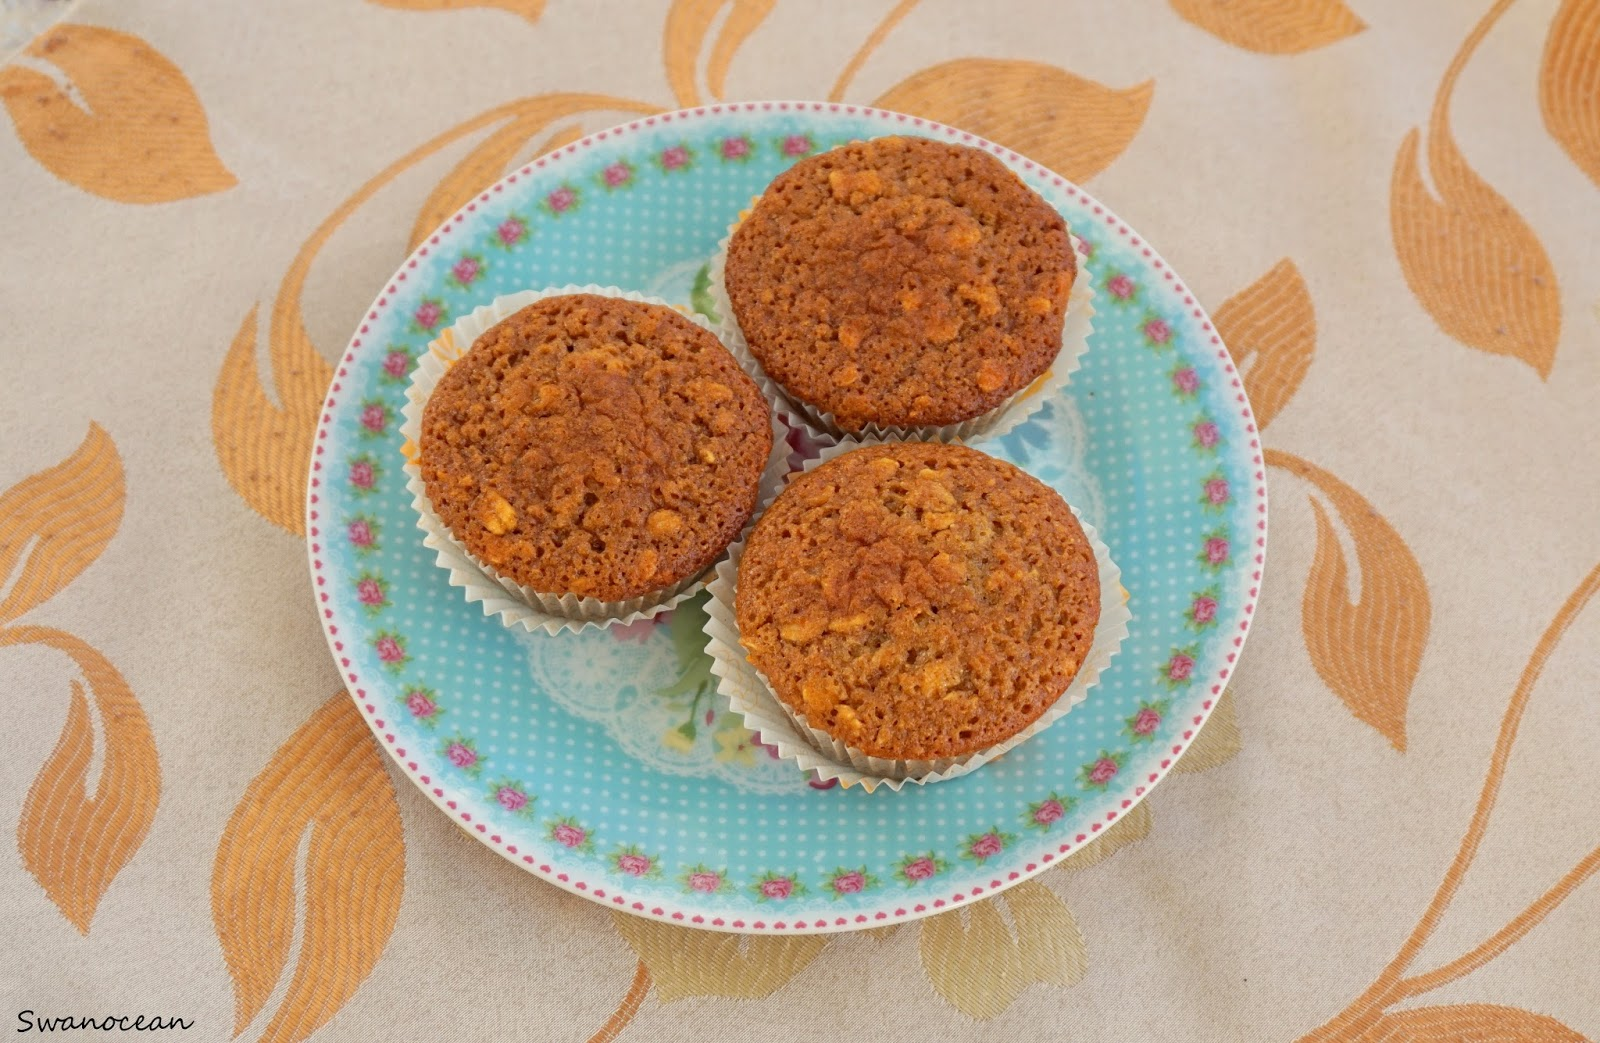 Whole wheat oat muffins - Swanocean's Recipes